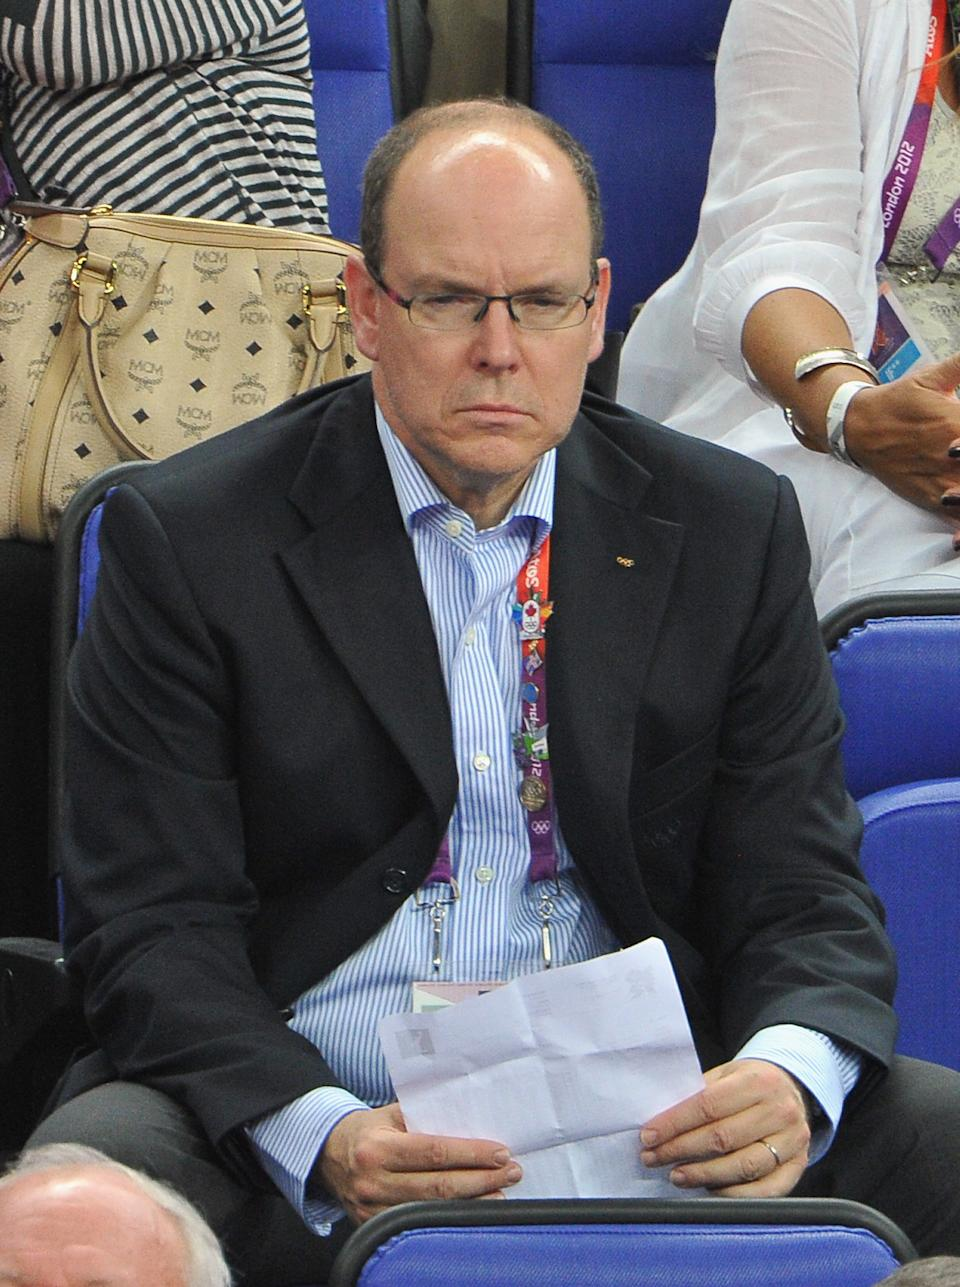 LONDON, ENGLAND - AUGUST 12: Prince Albert II of Monaco during the Men's Basketball gold medal game between the United States and Spain on Day 16 of the London 2012 Olympics Games at North Greenwich Arena on August 12, 2012 in London, England. (Photo by Pascal Le Segretain/Getty Images)